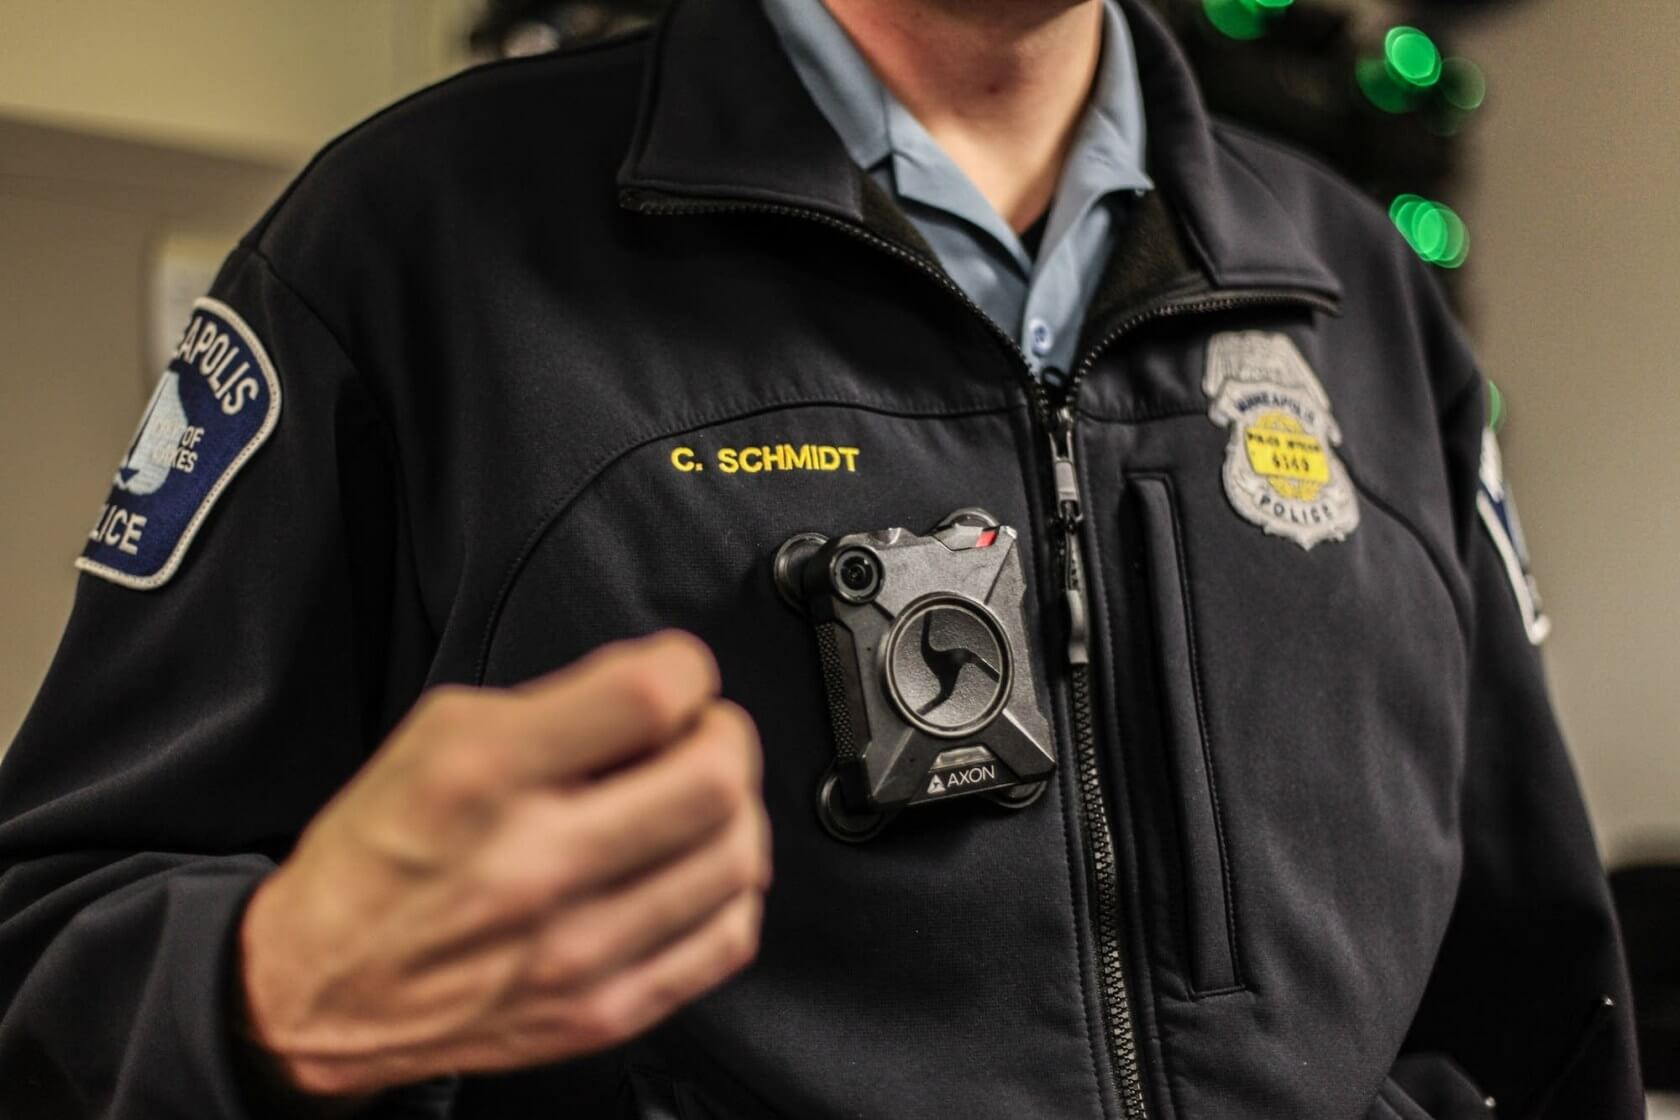 California's State Assembly may ban the use of facial recognition tech in police body cameras